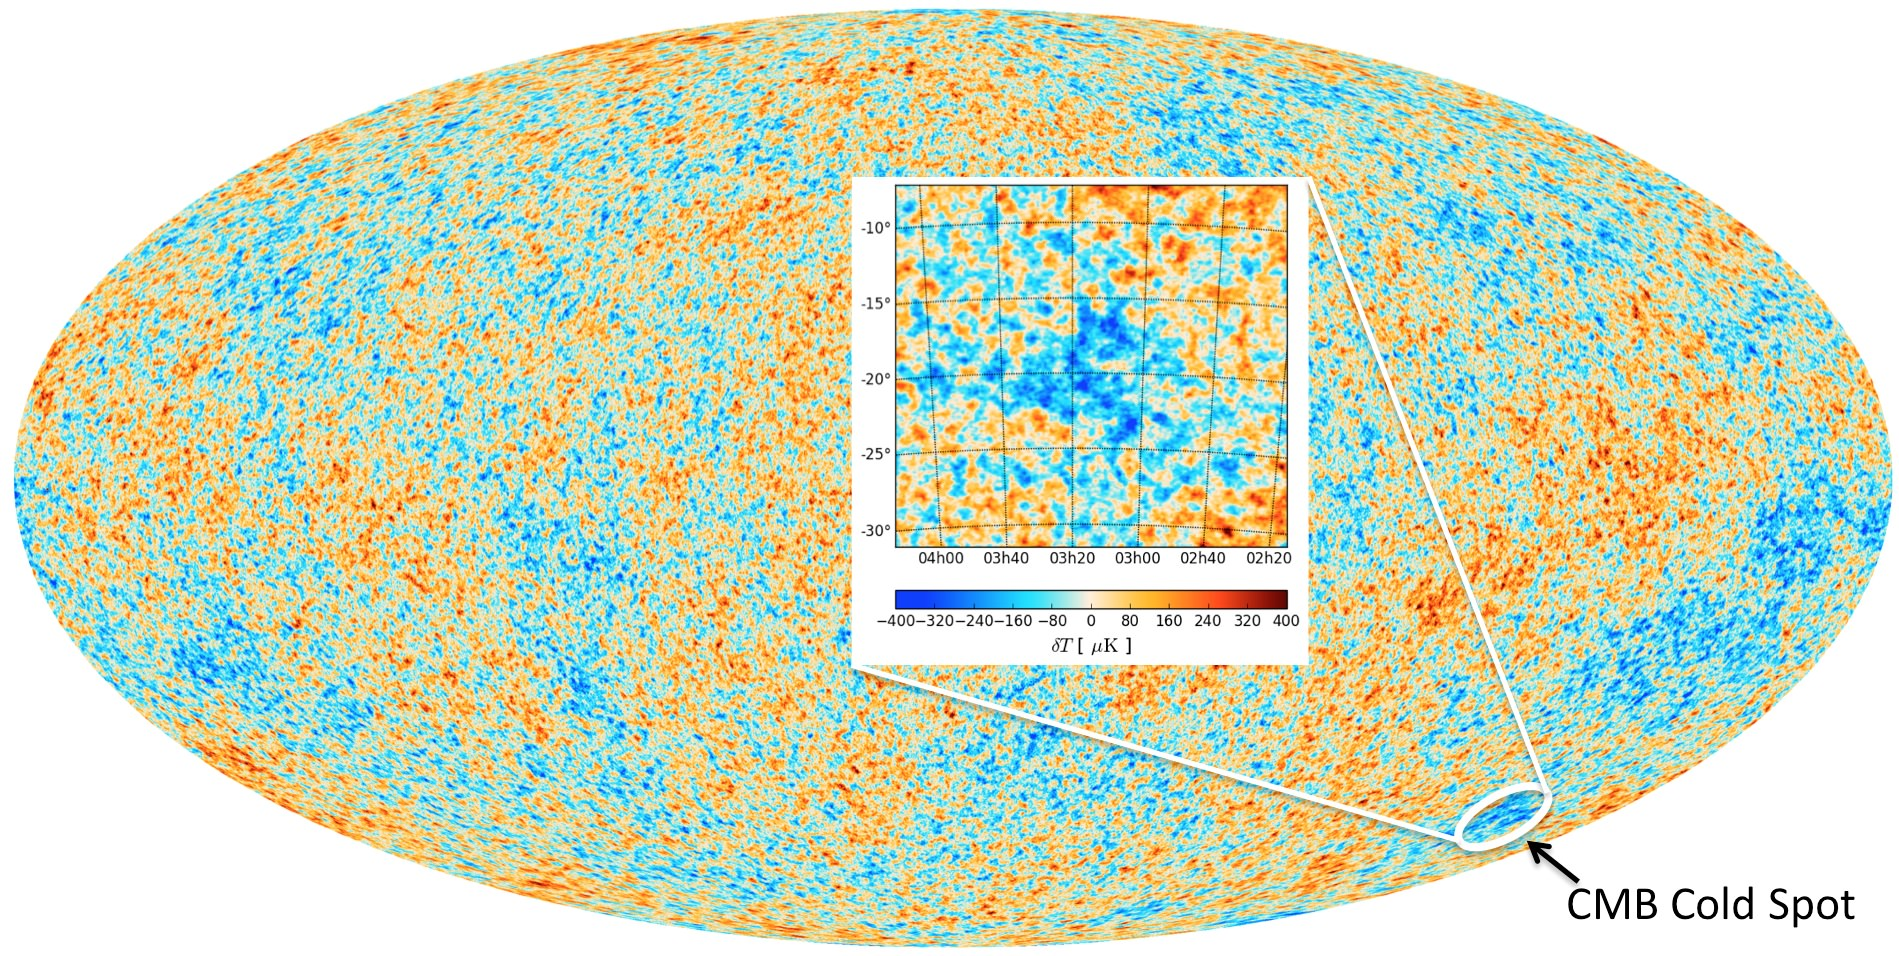 Is Another Universe Sitting Too Close To Us On The Multiverse Bus?